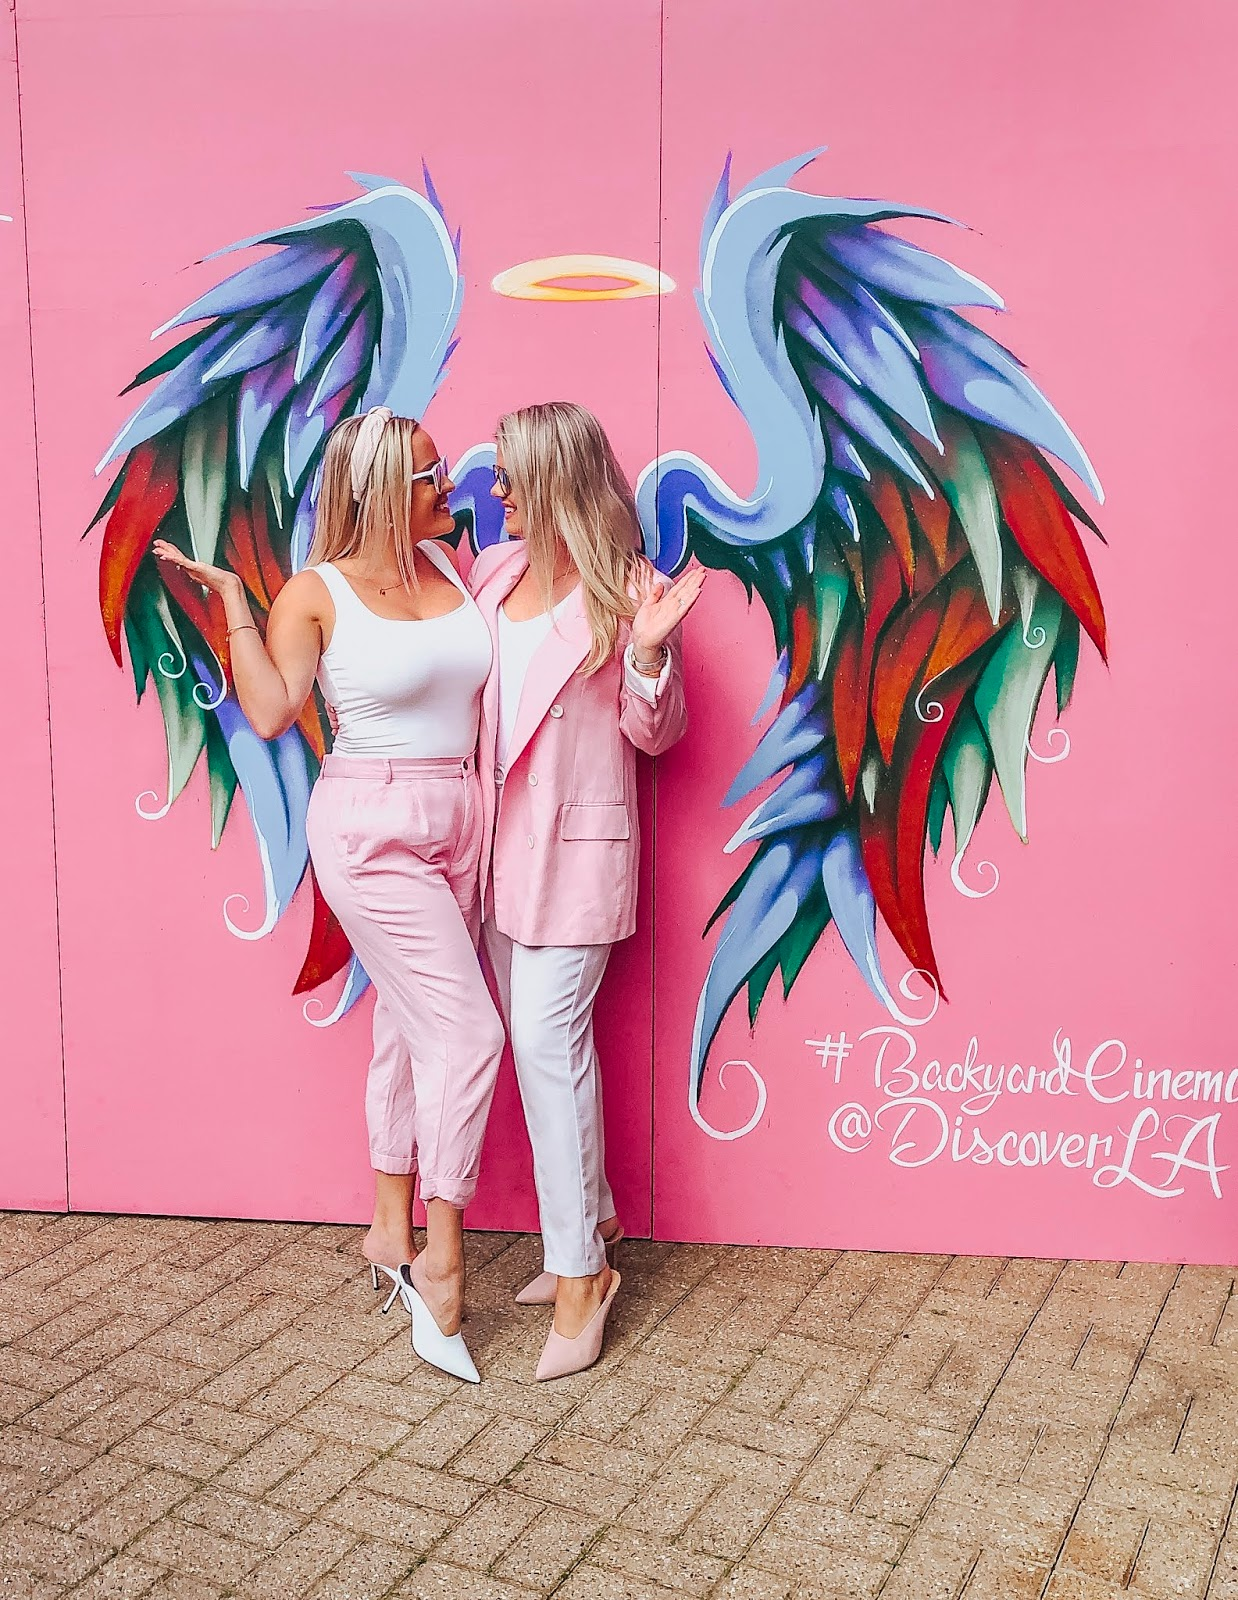 whitney and megan posing in front of angel wings on a pink wall at LA Nights, Back Yard Cinema